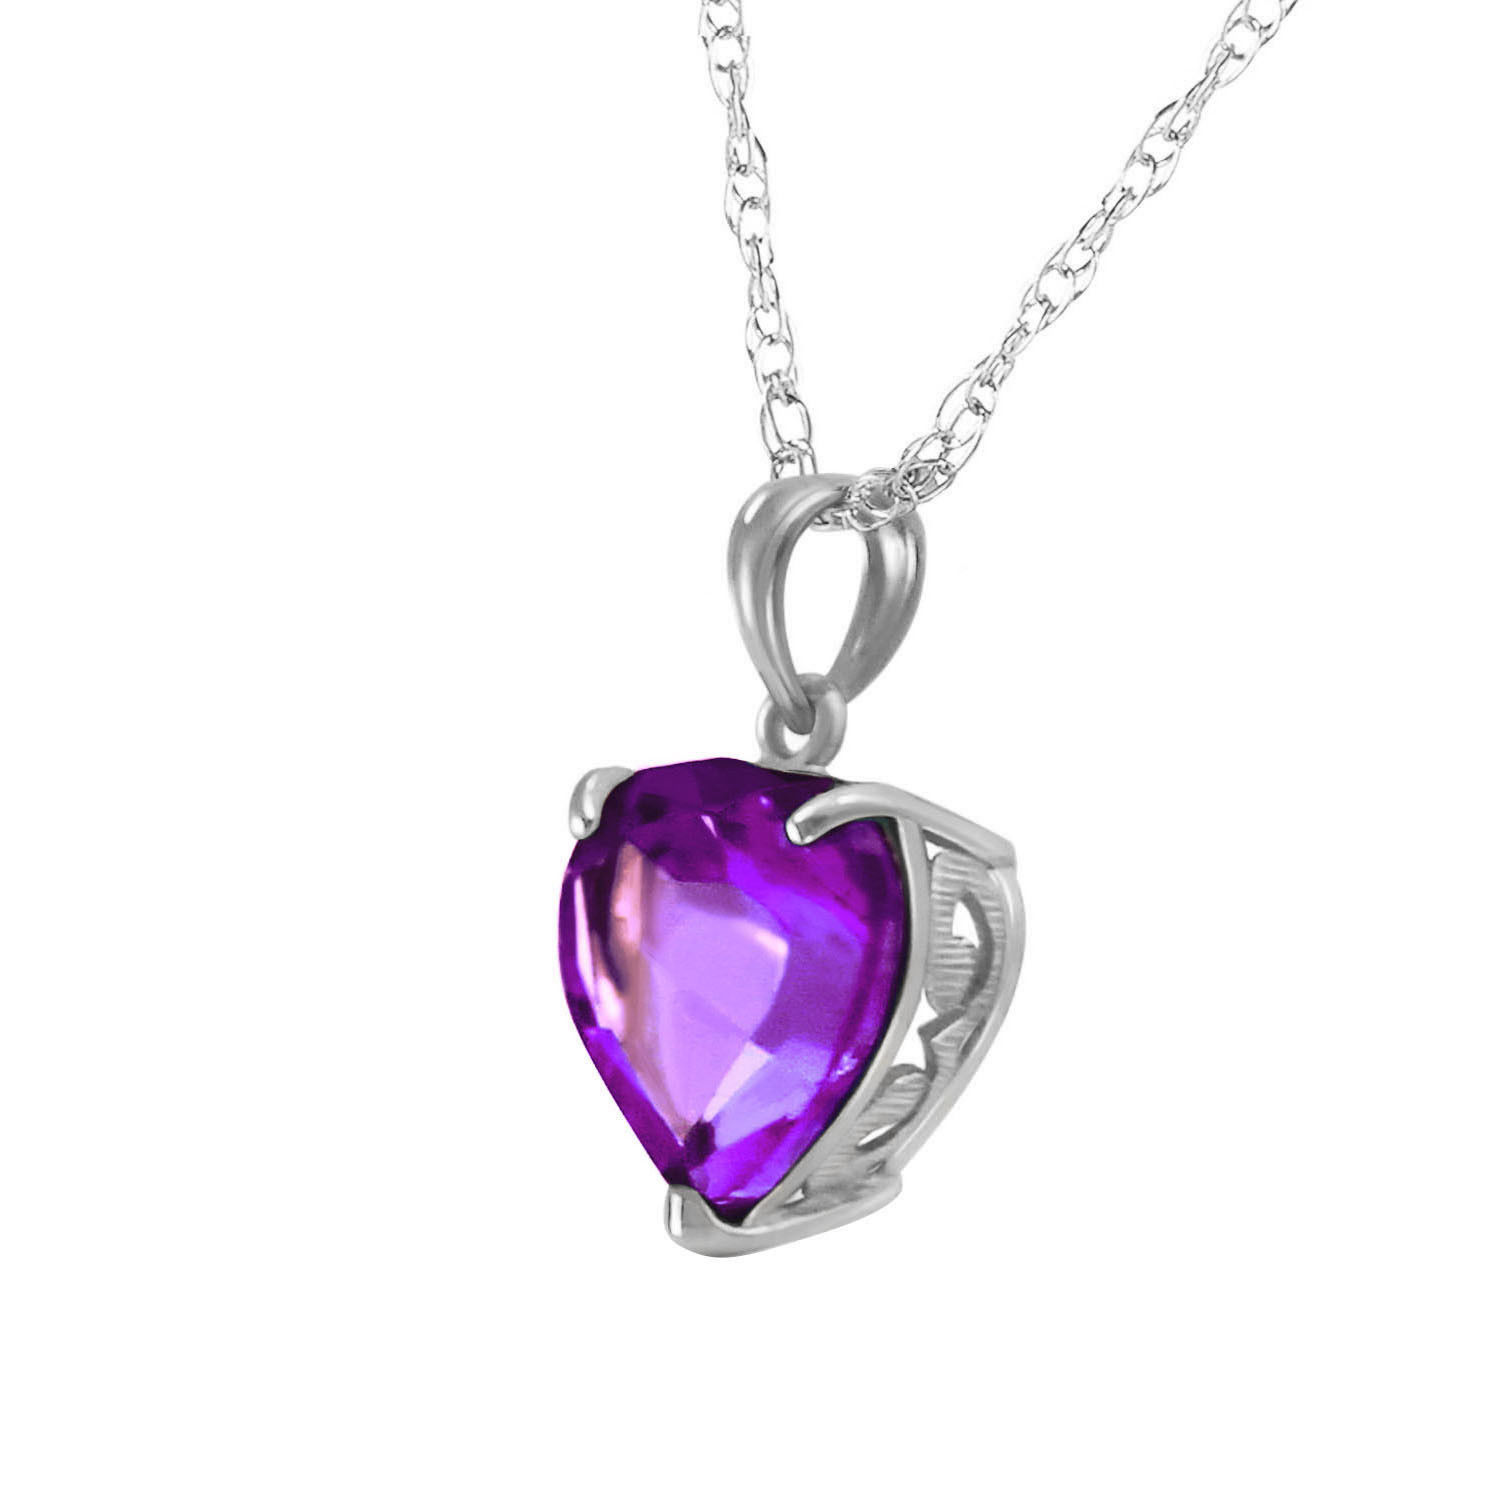 14k solid white gold necklace with natural 10mm heart